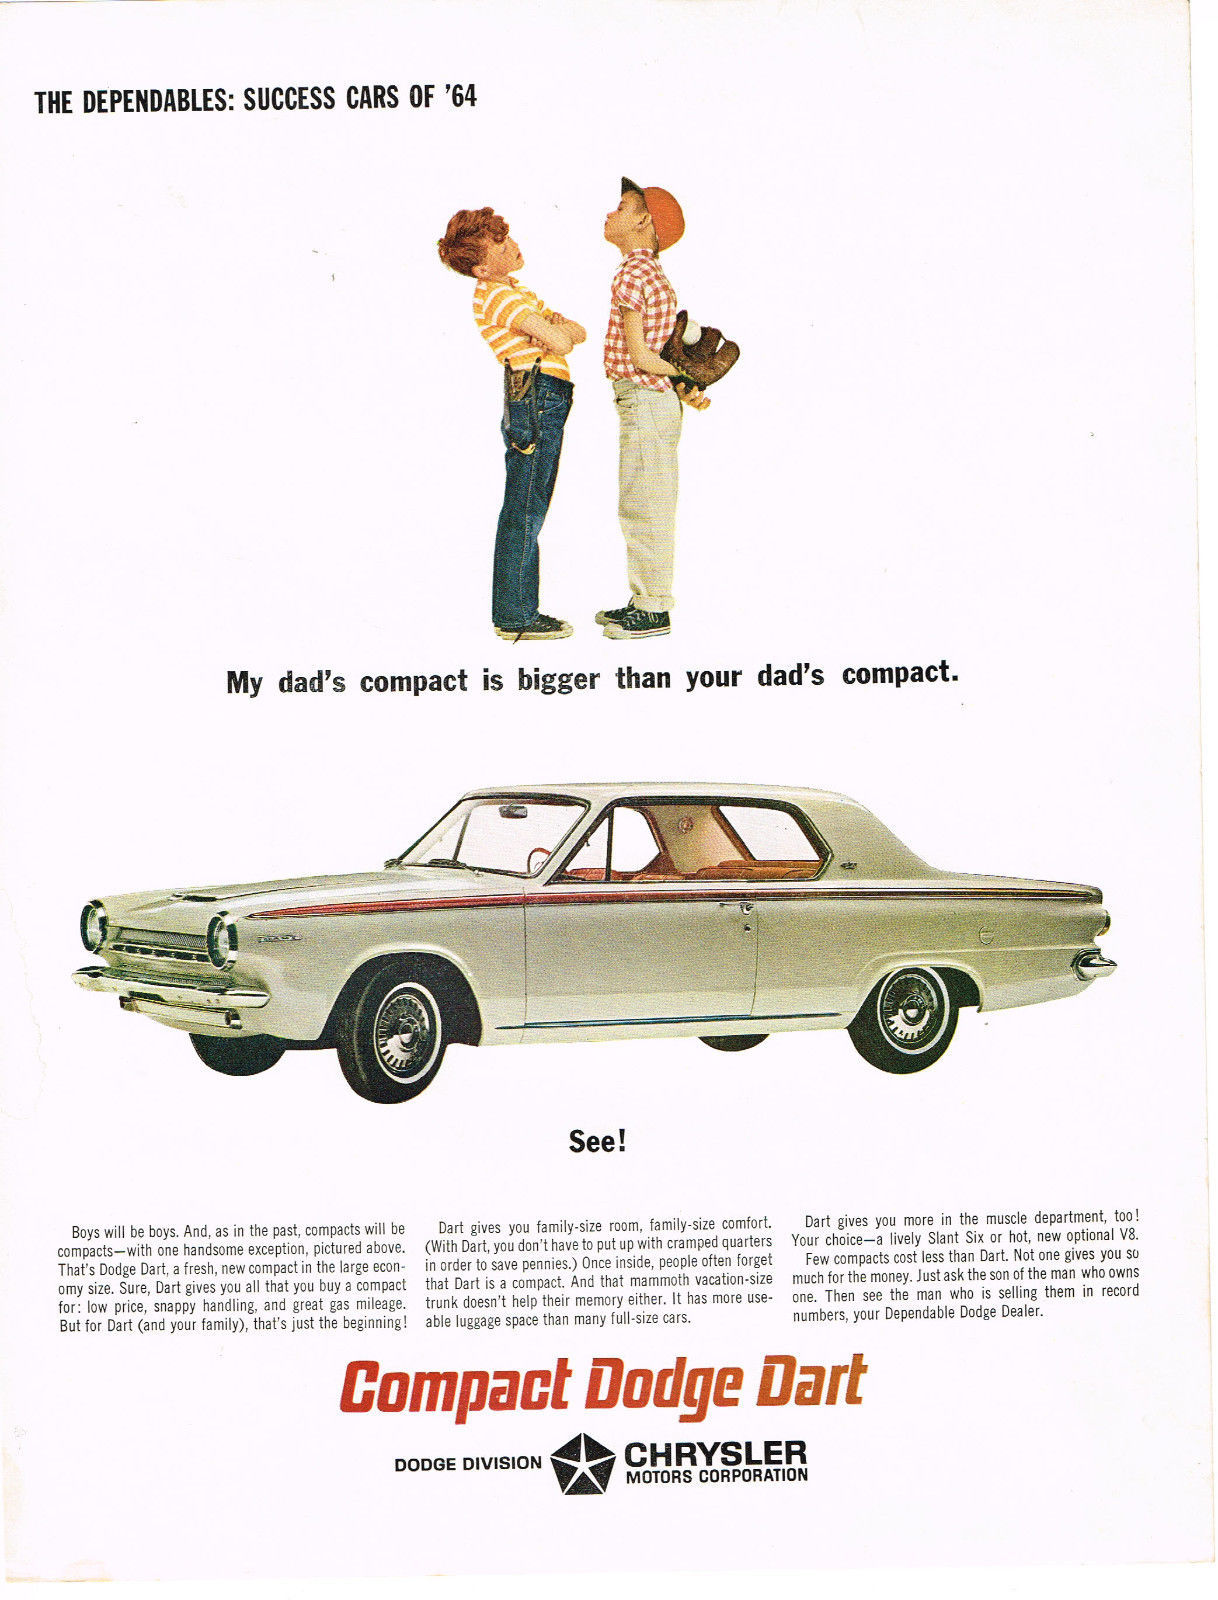 Vintage 1964 Magazine Ad Dodge My Dads Compact Is Bigger Than Your Dads Compact - $5.93